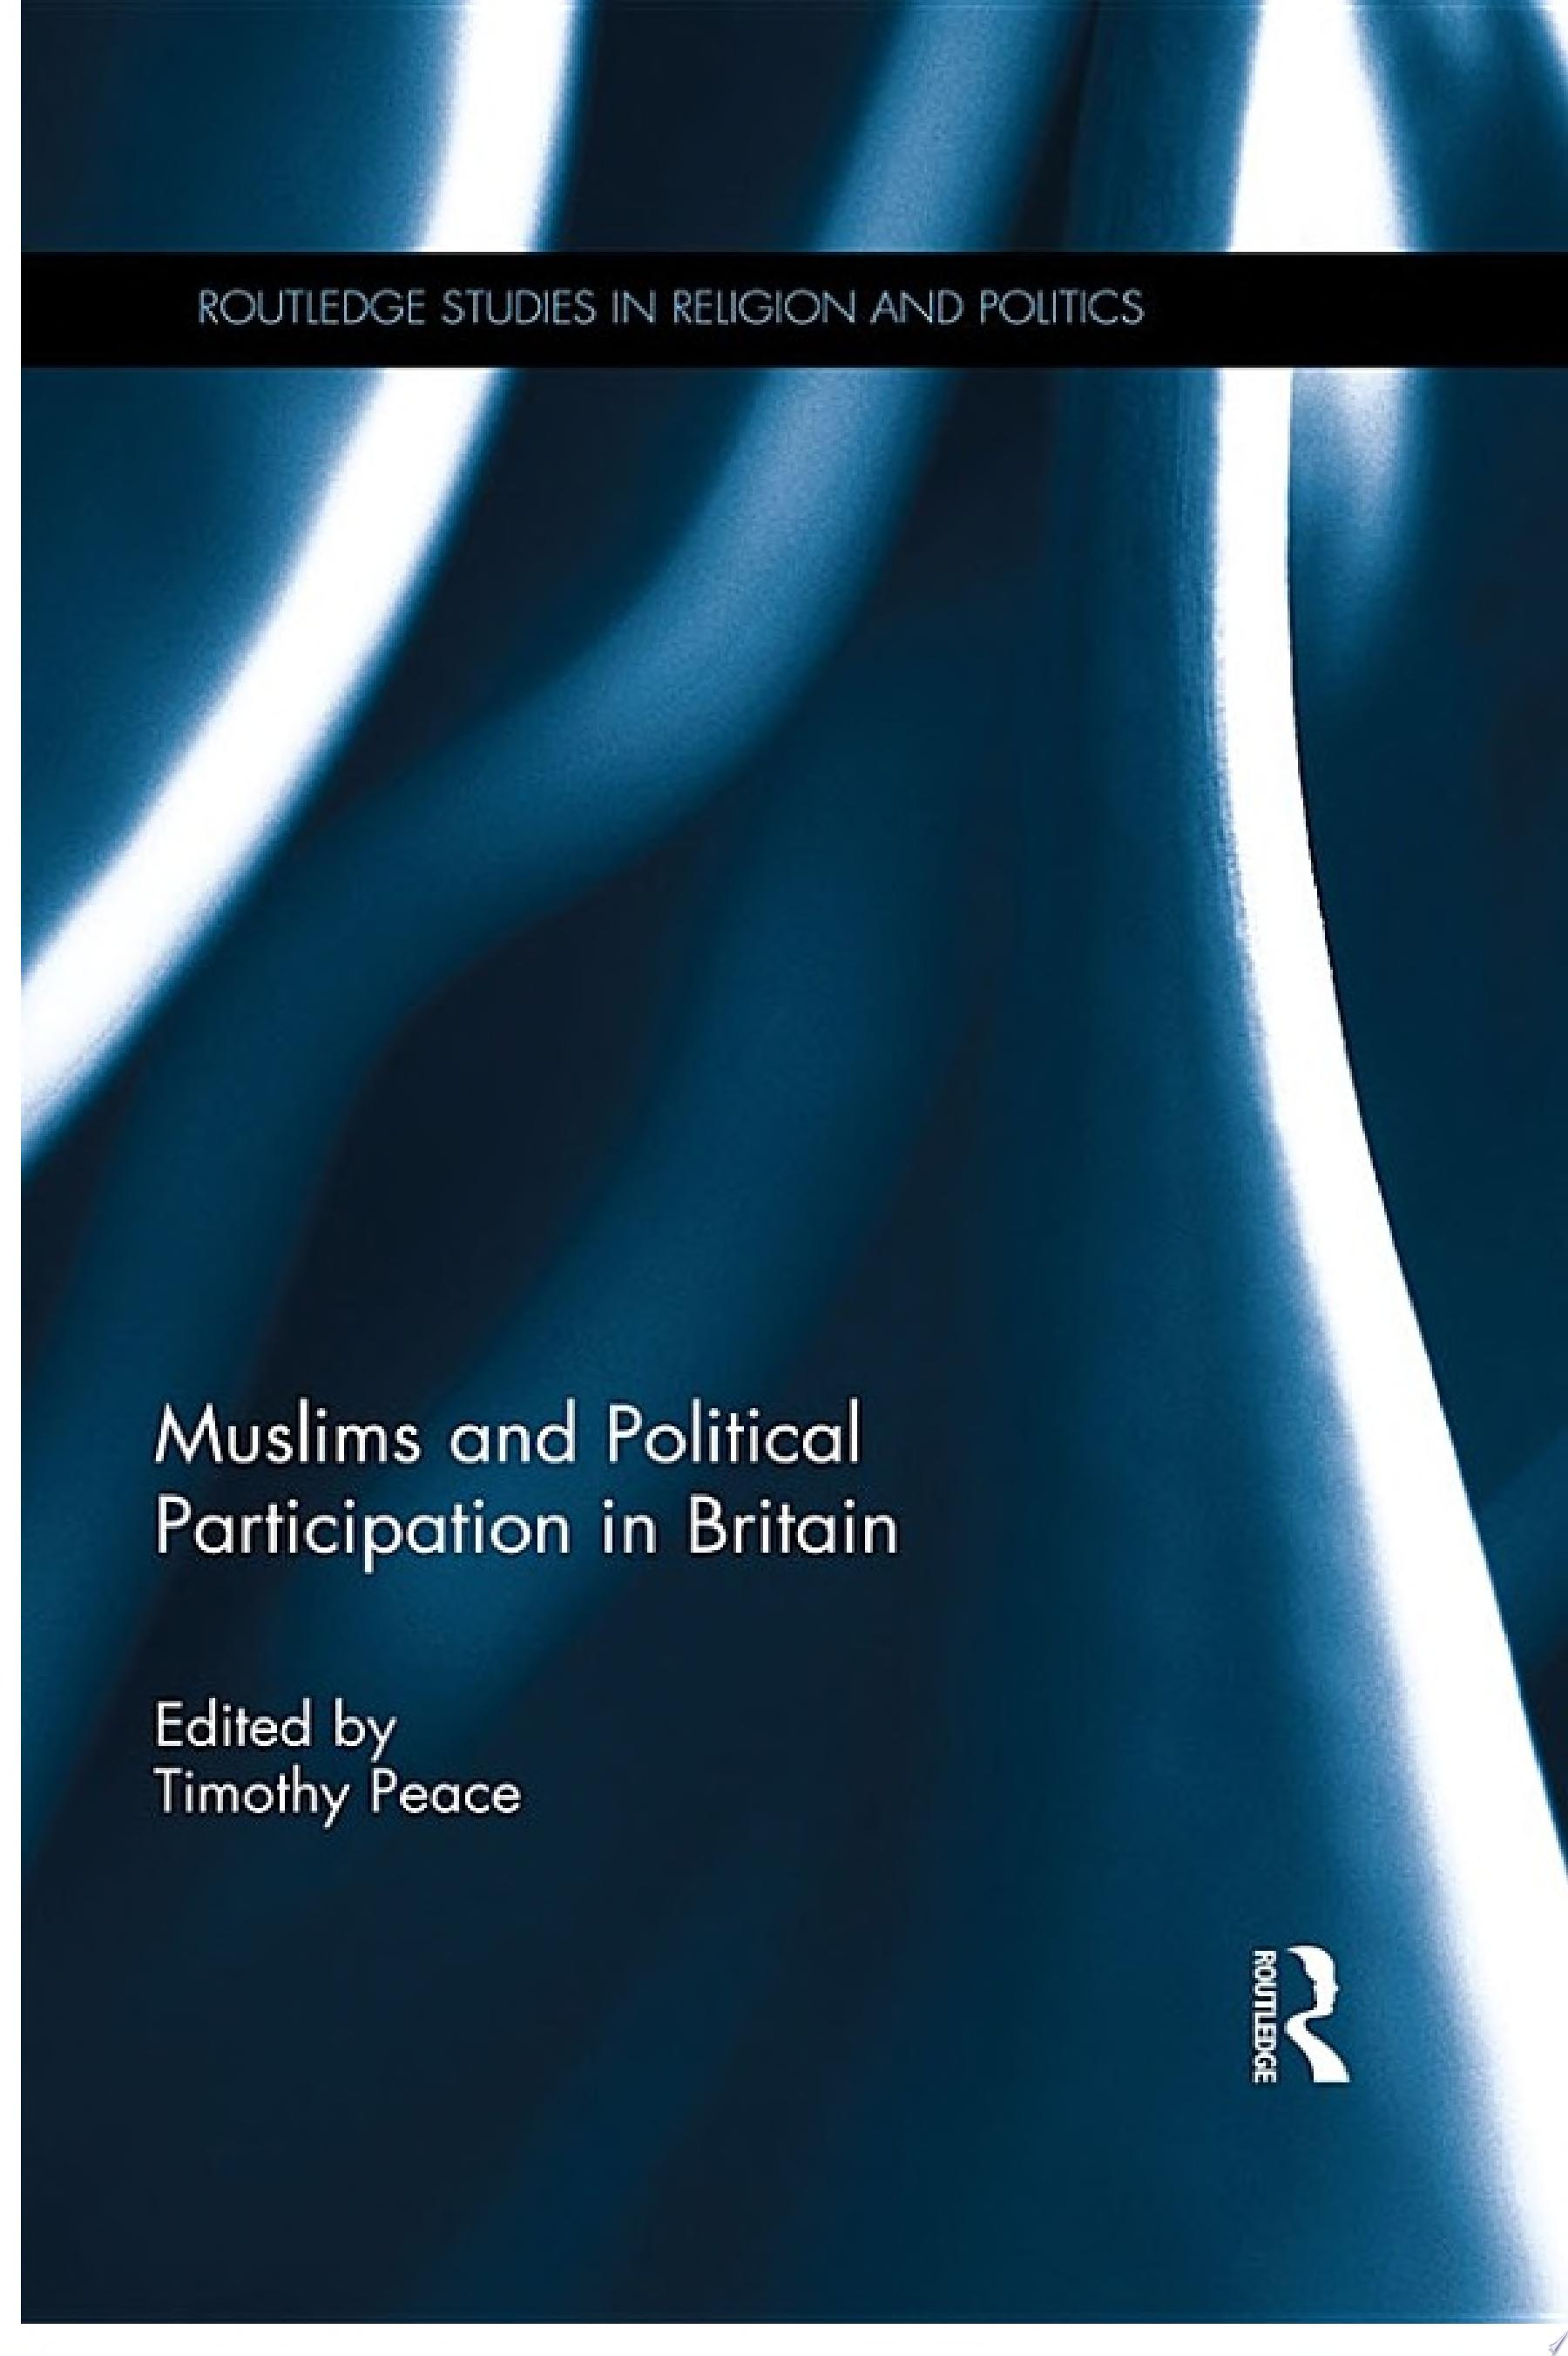 Muslims and Political Participation in Britain